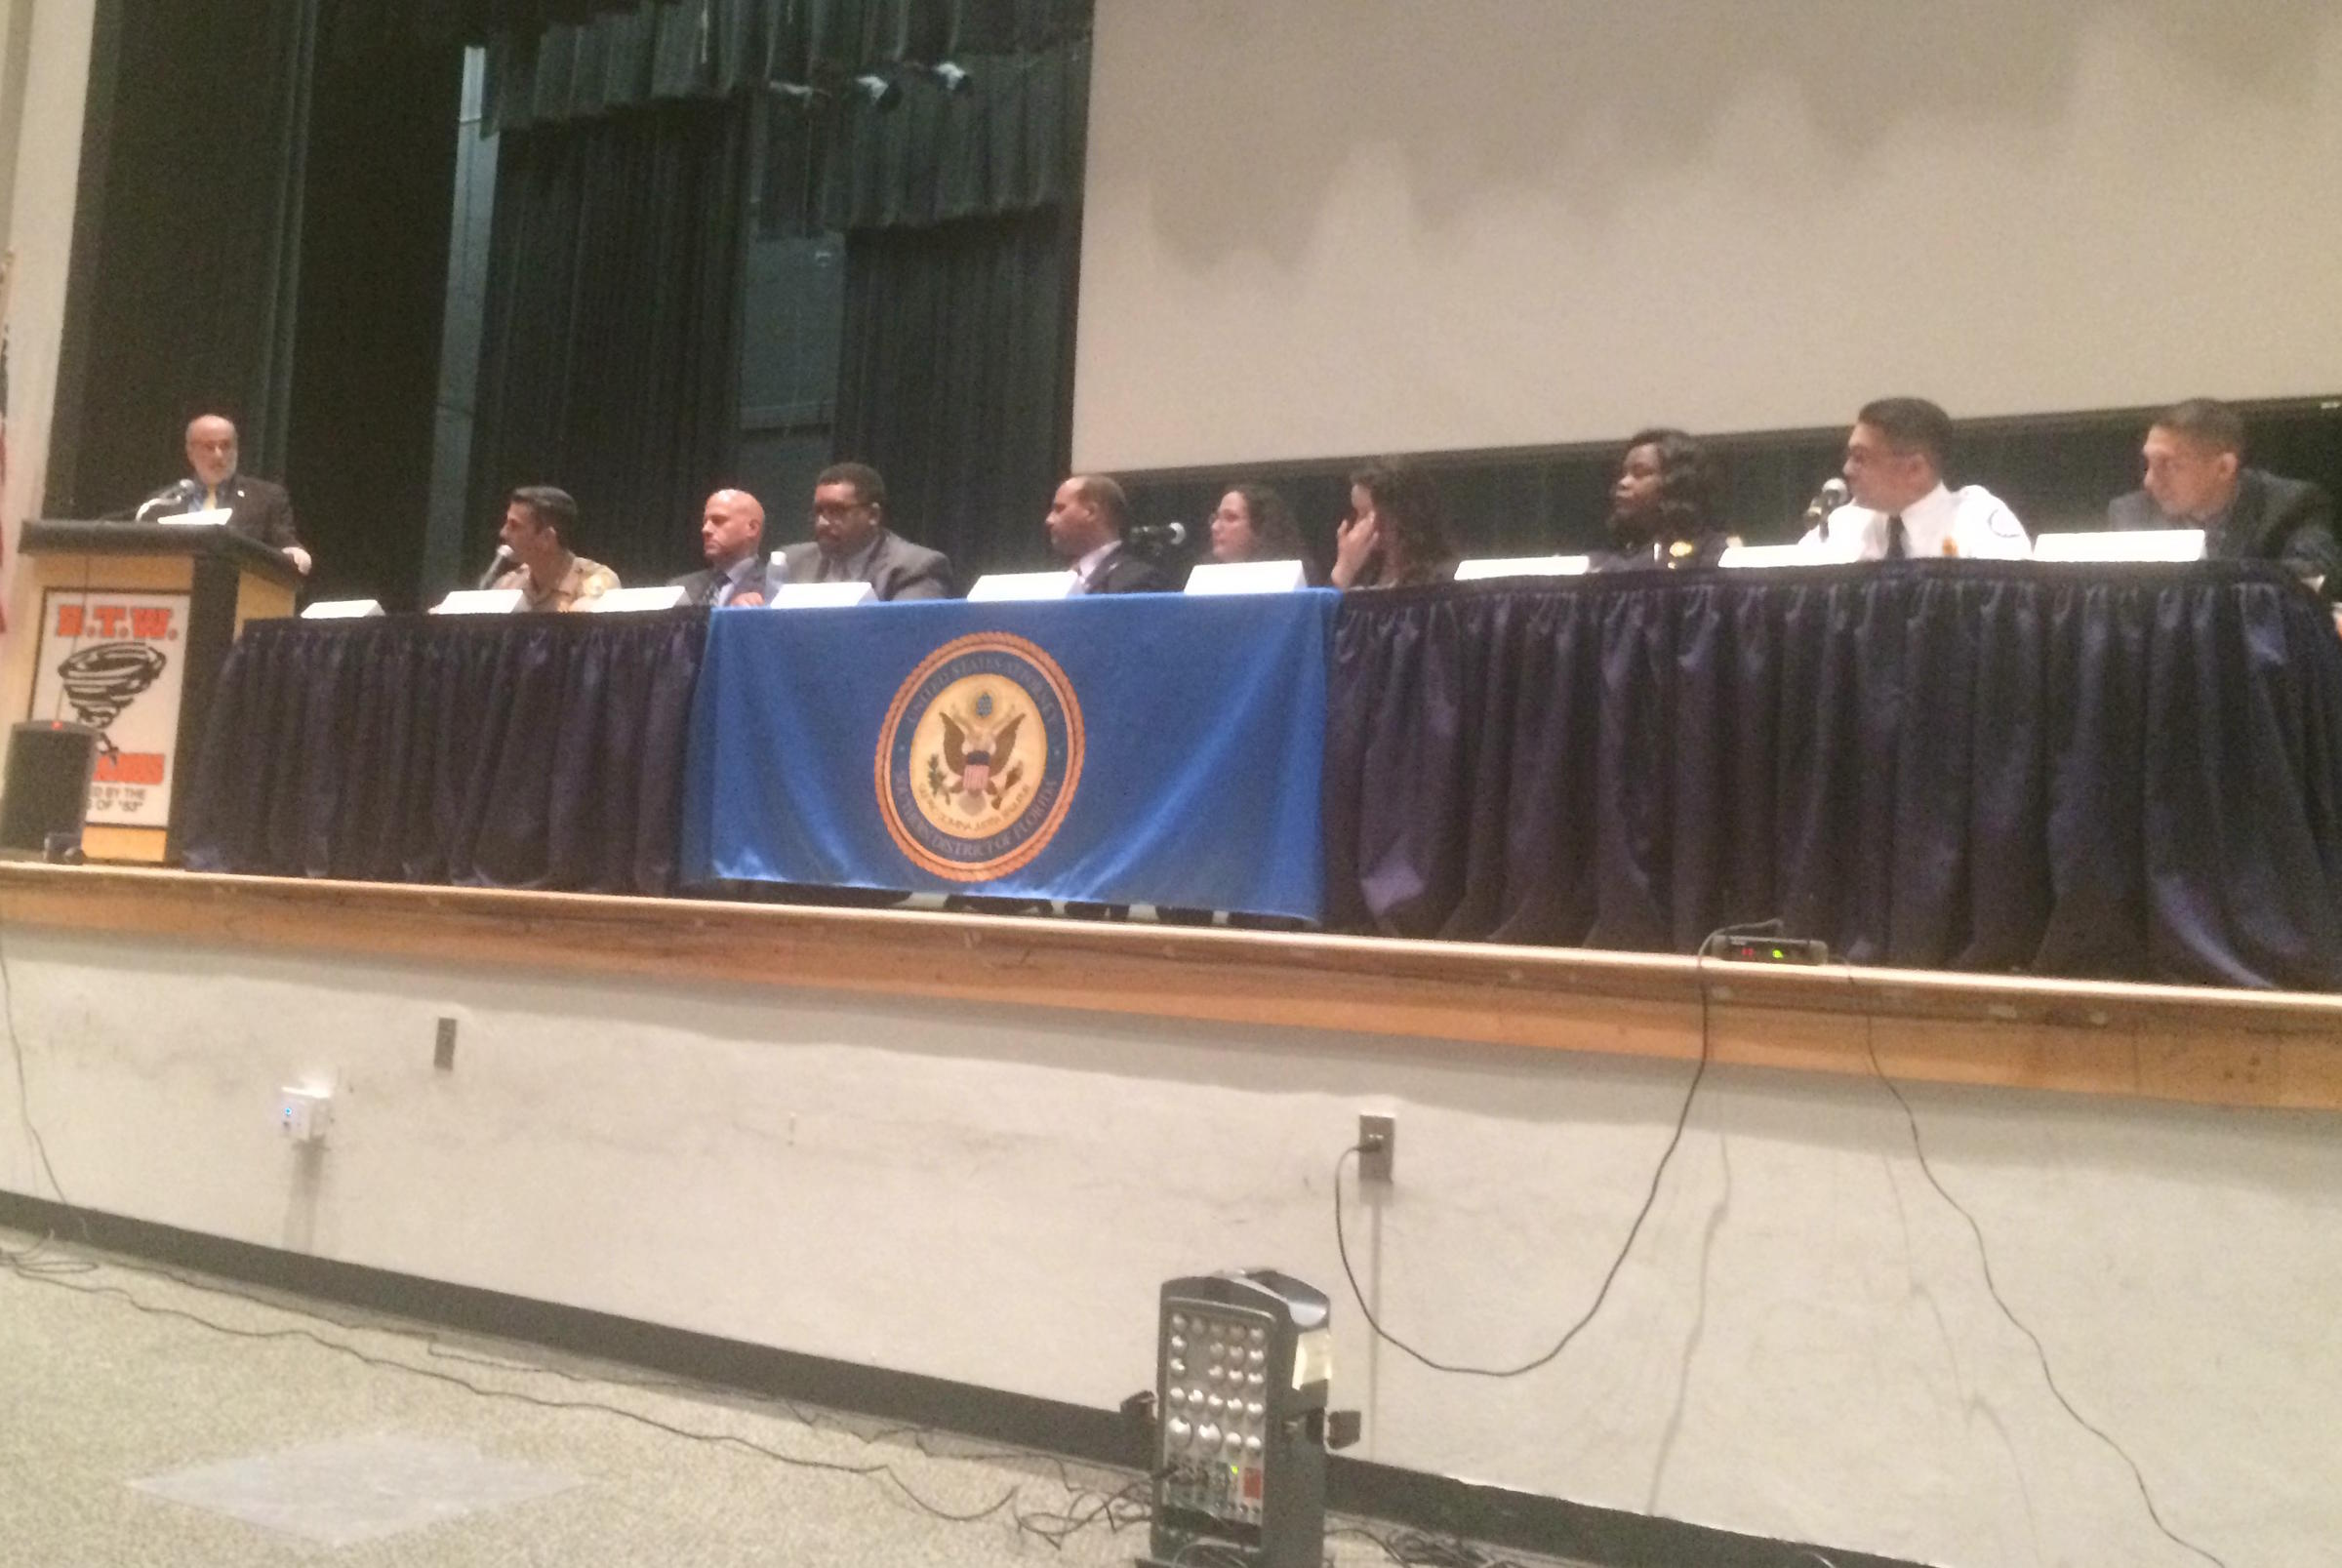 Miami dade faces shortage of treatment beds amid spike in opioid the ua attorneys office convened a panel discussion on heroin and opioid use at booker t washington high school in overtown thursday 1betcityfo Image collections